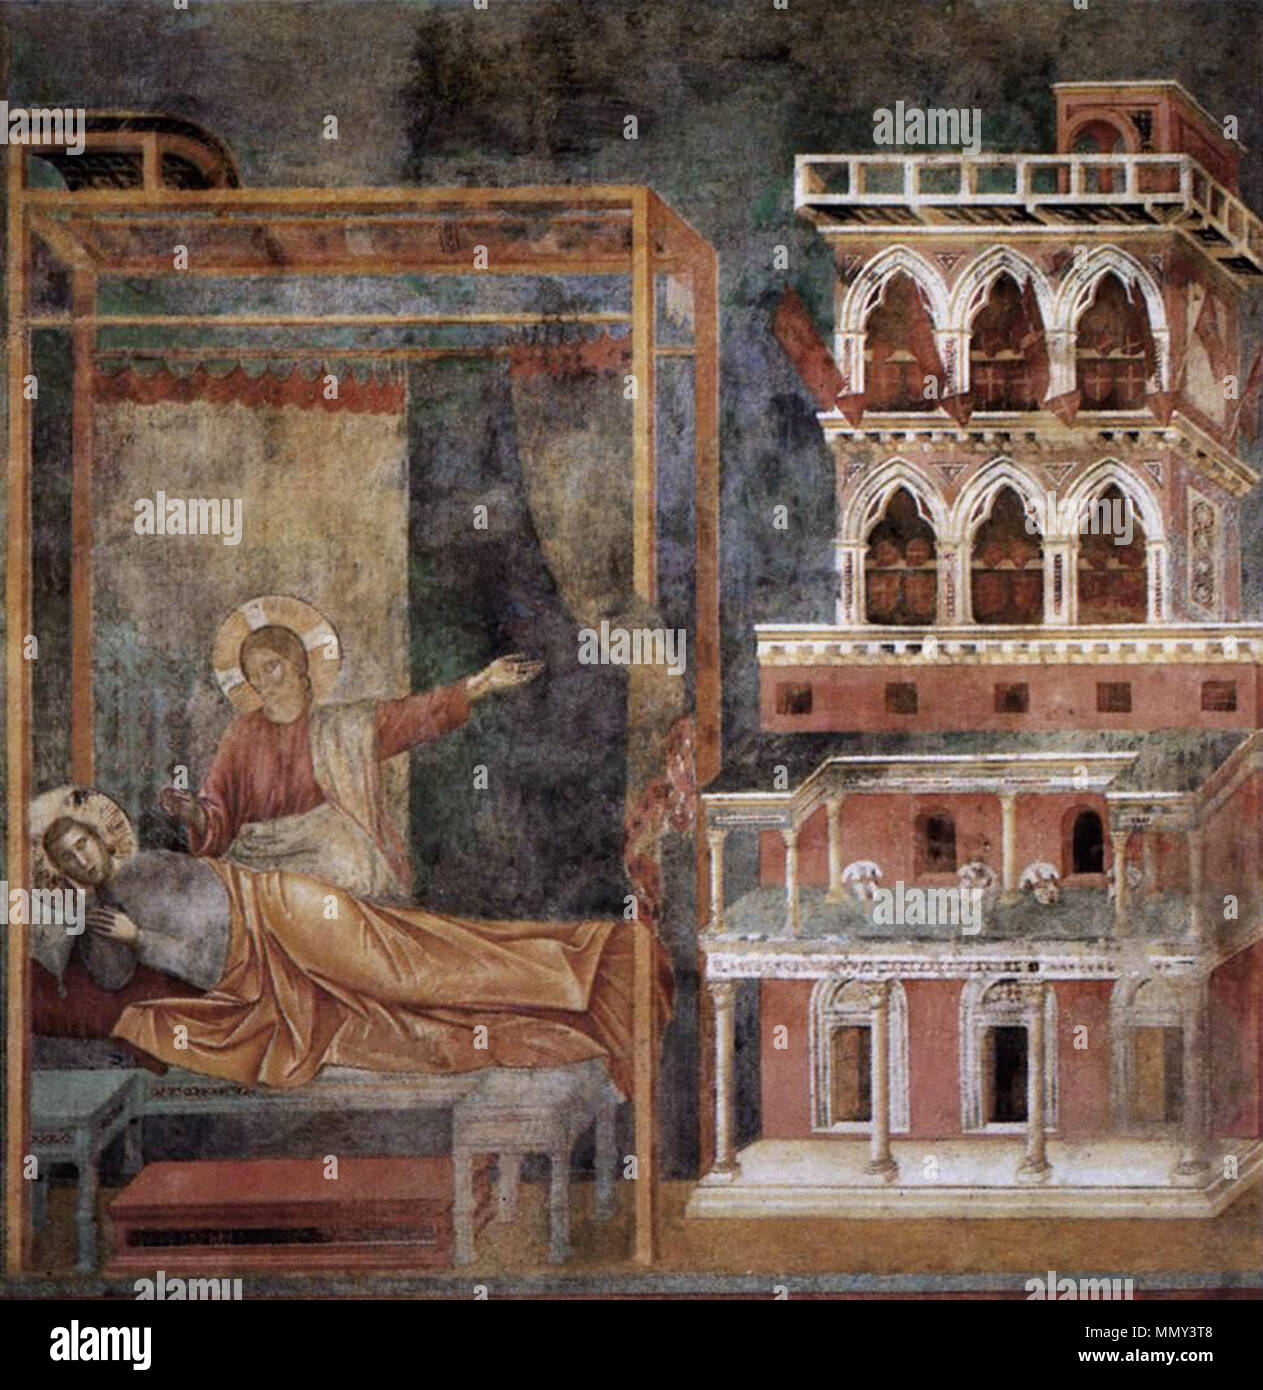 Dream of the Palace . between 1297 and 1299. Giotto di Bondone - Legend of  St Francis - 3. Dream of the Palace - WGA09120